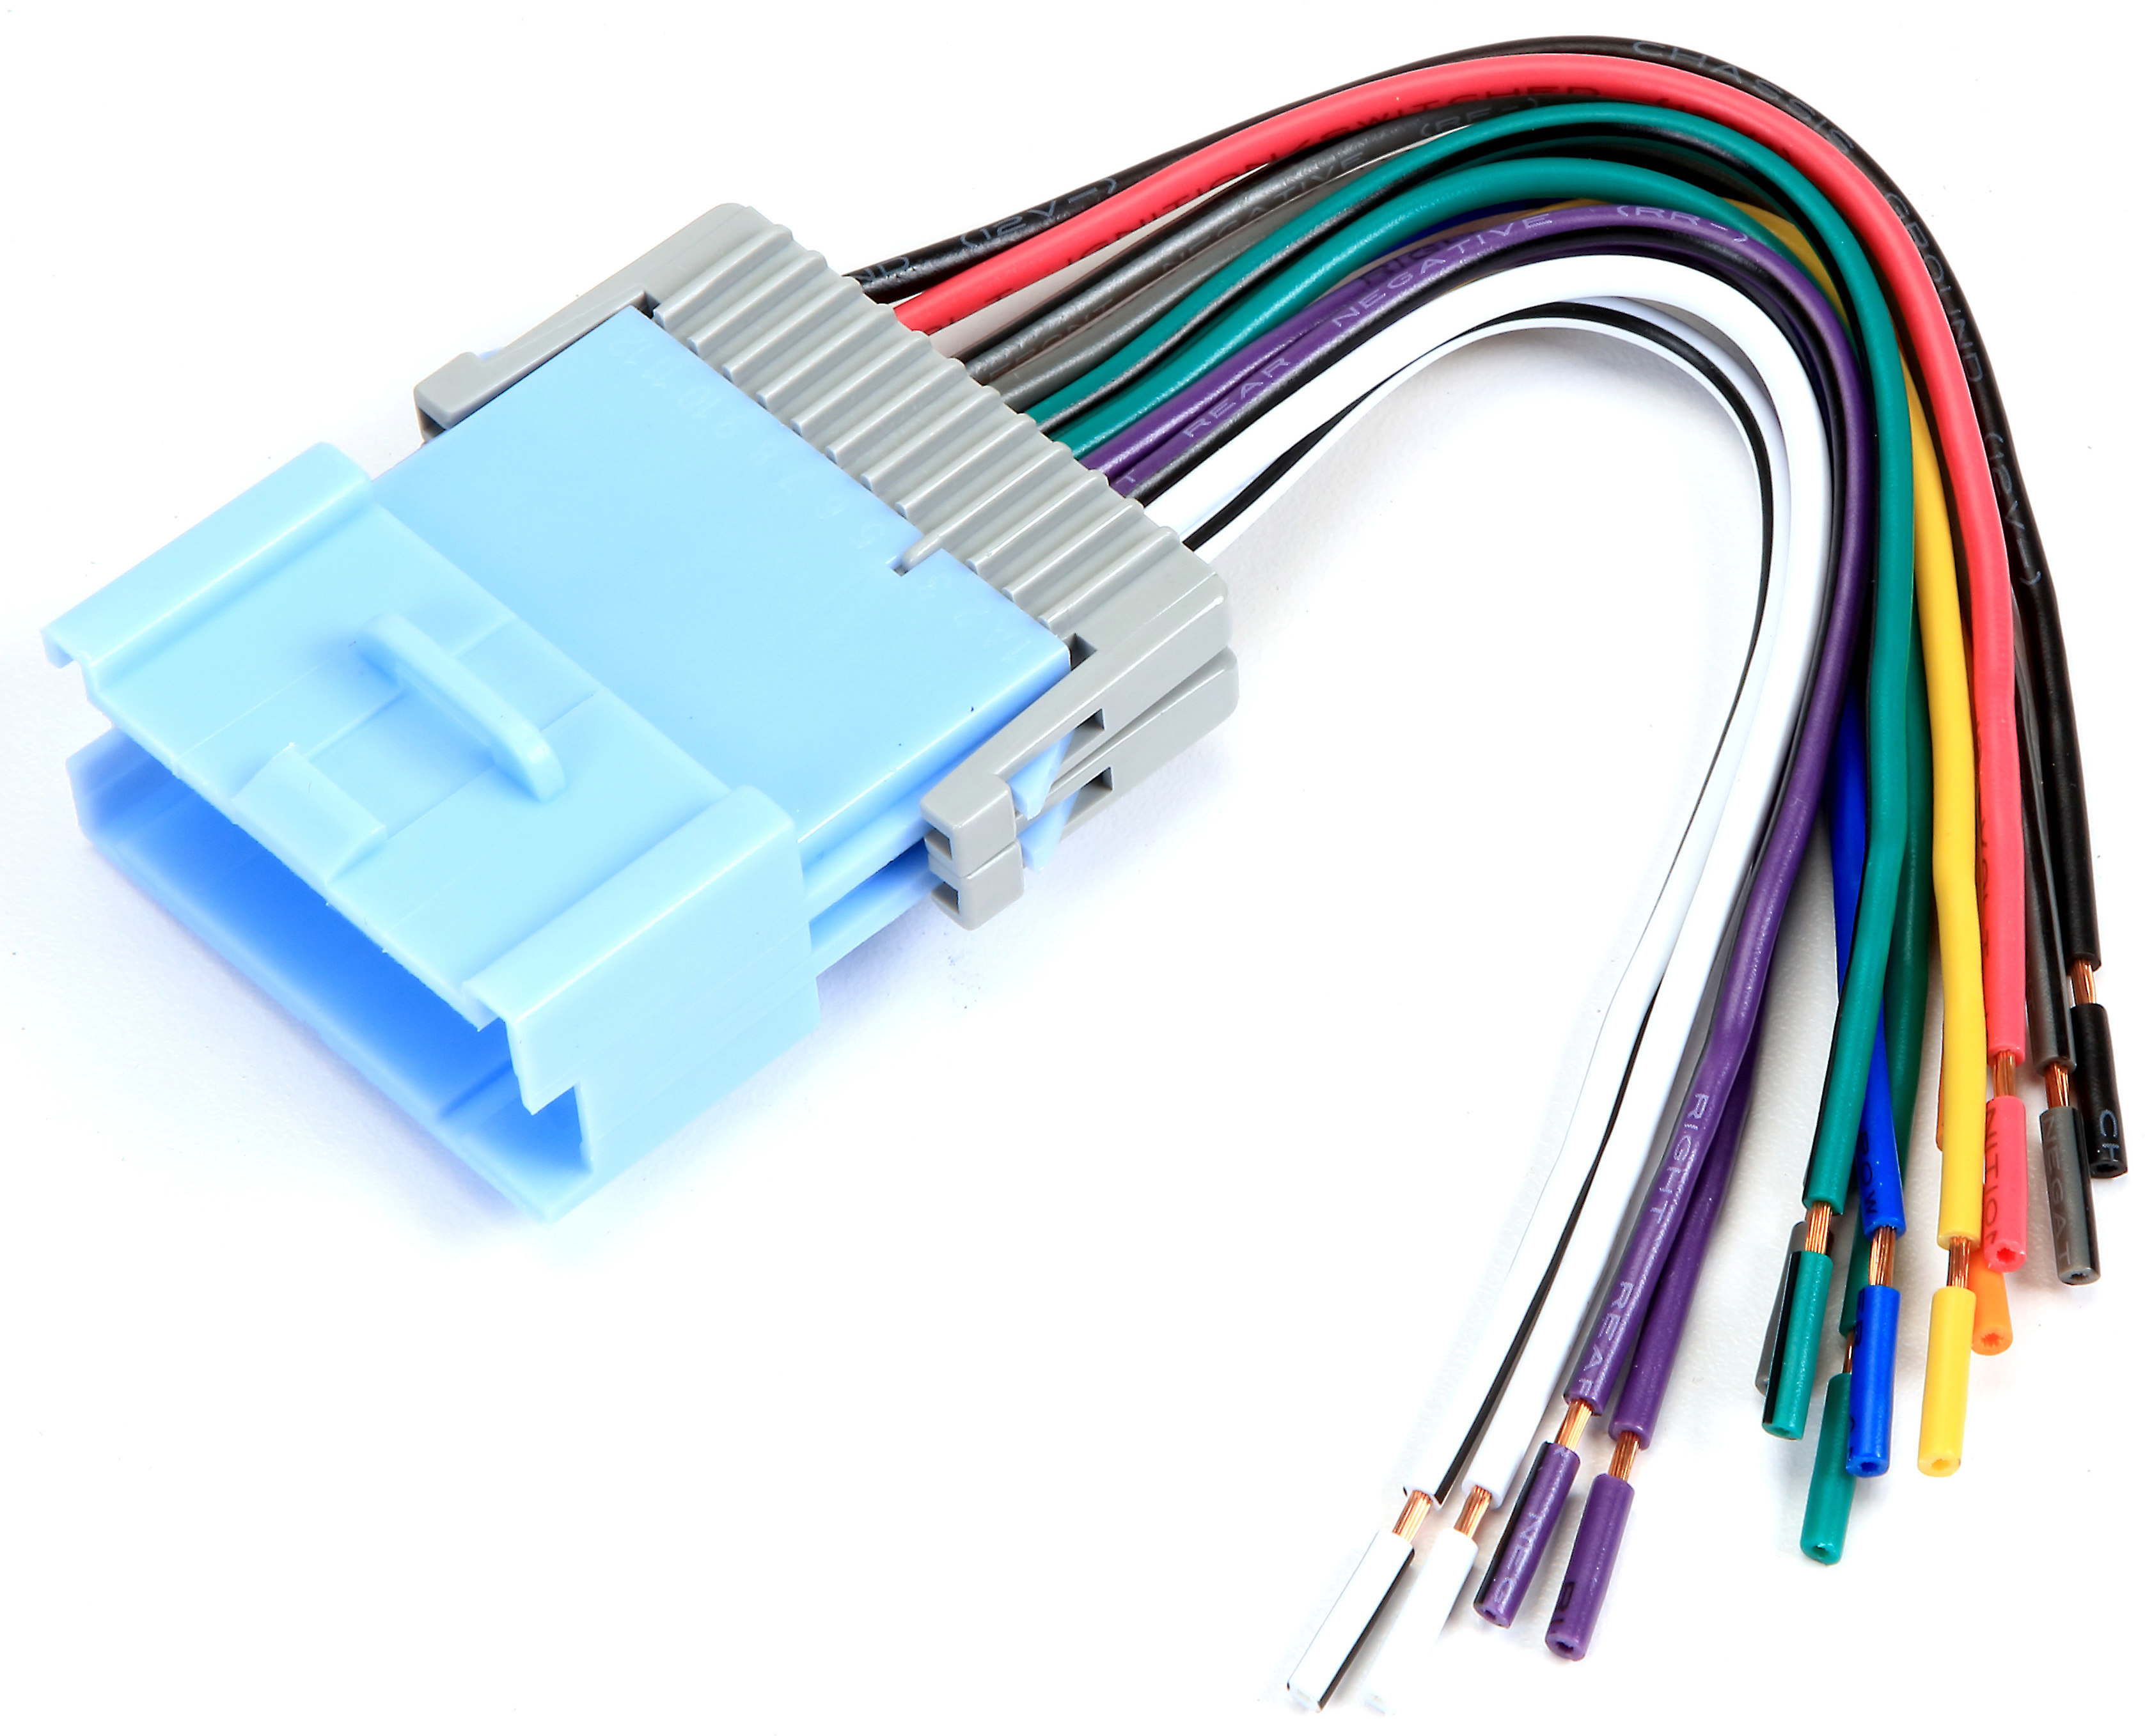 Metra 70-2102 Receiver Wiring Harness Connect a new car stereo in select  2004-05 Saturn vehicles at Crutchfield | Receiver Wiring Harness Saturn |  | Crutchfield